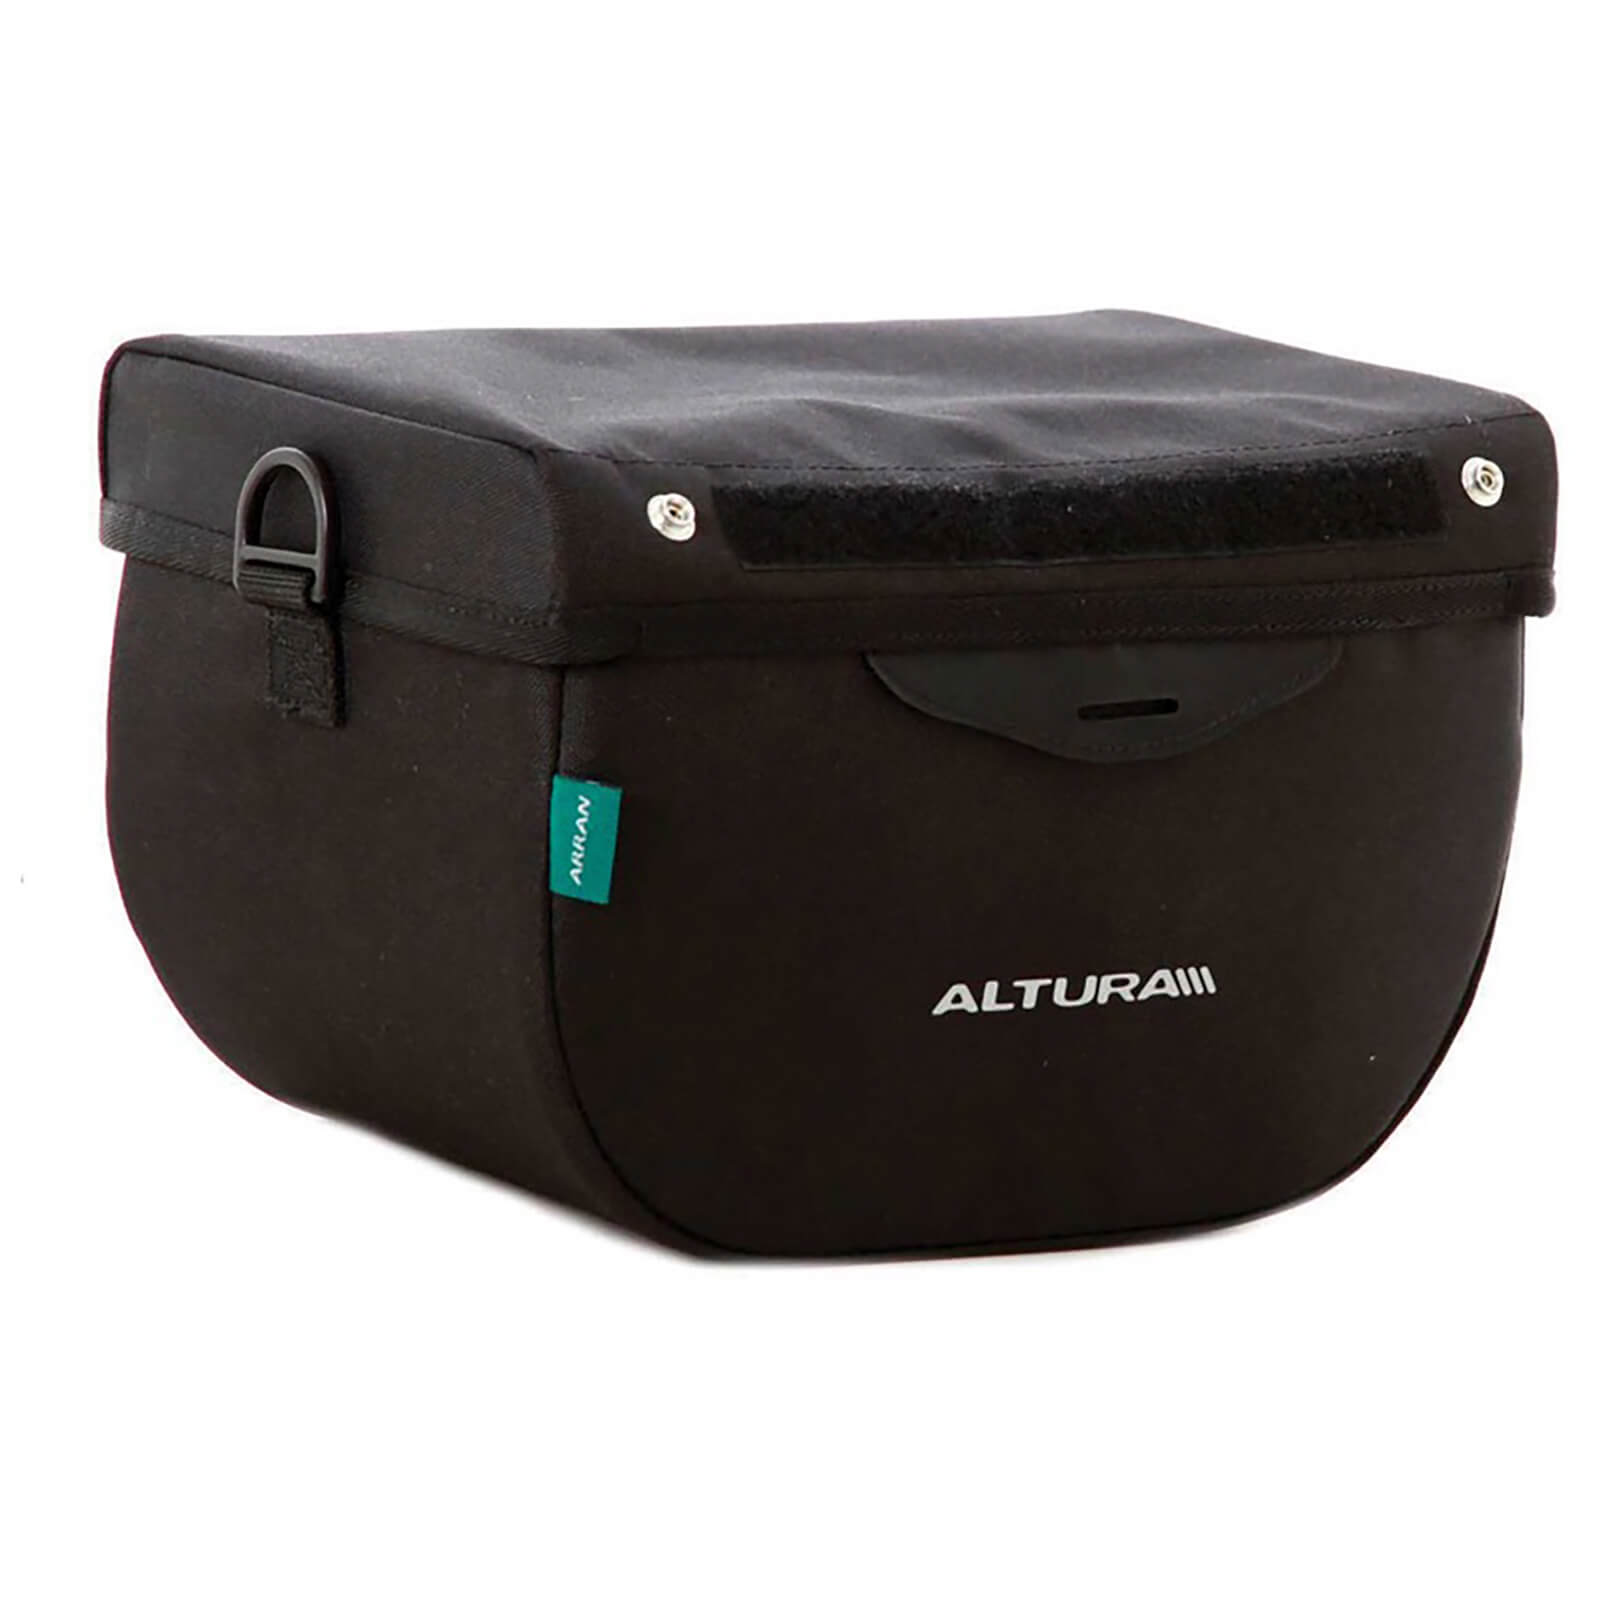 Altura Arran Bar Bag - Black